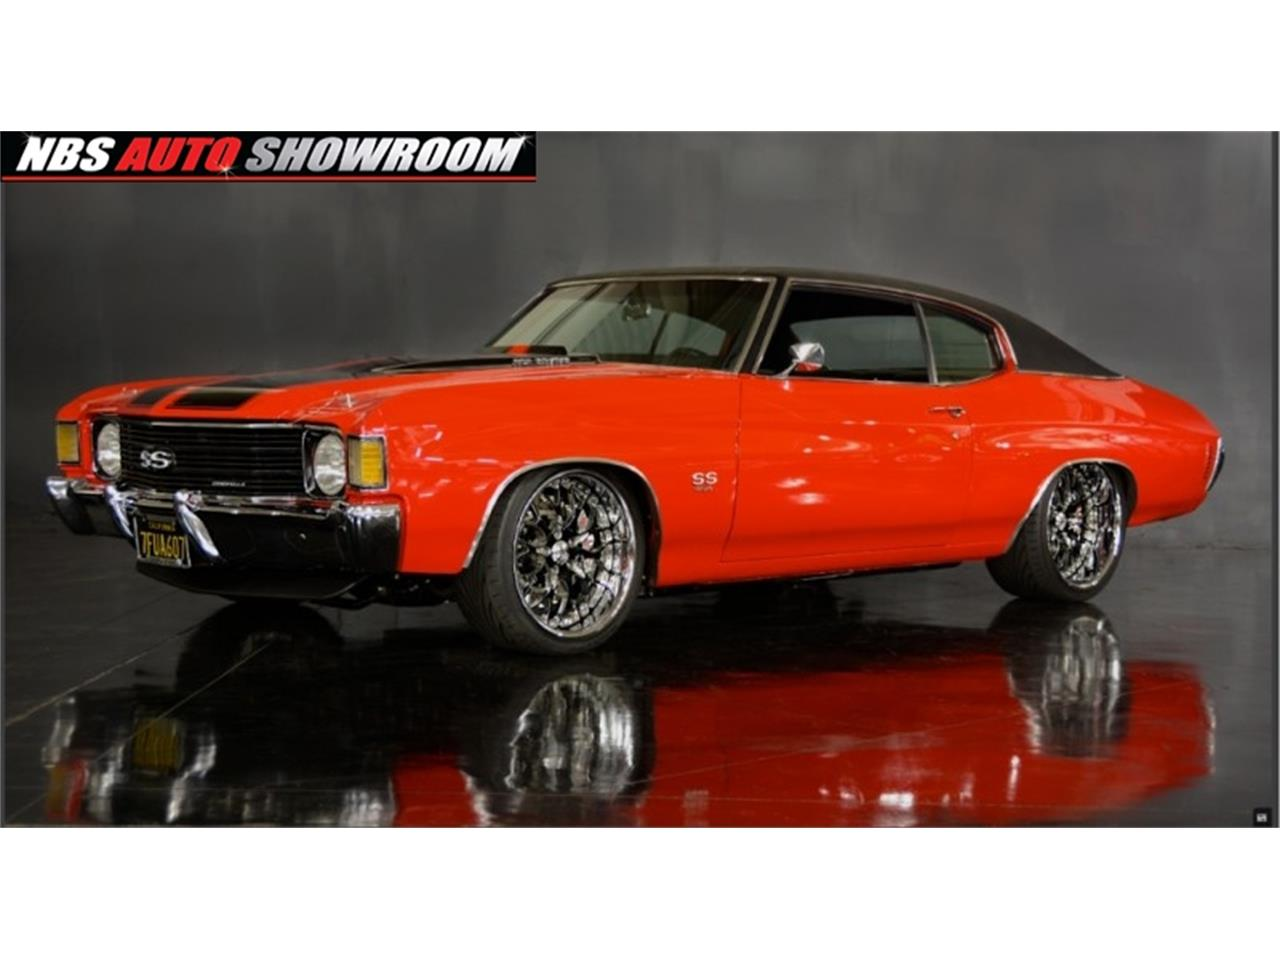 Large Picture of '72 Chevrolet Chevelle located in California - $70,067.00 Offered by NBS Auto Showroom - KCKI